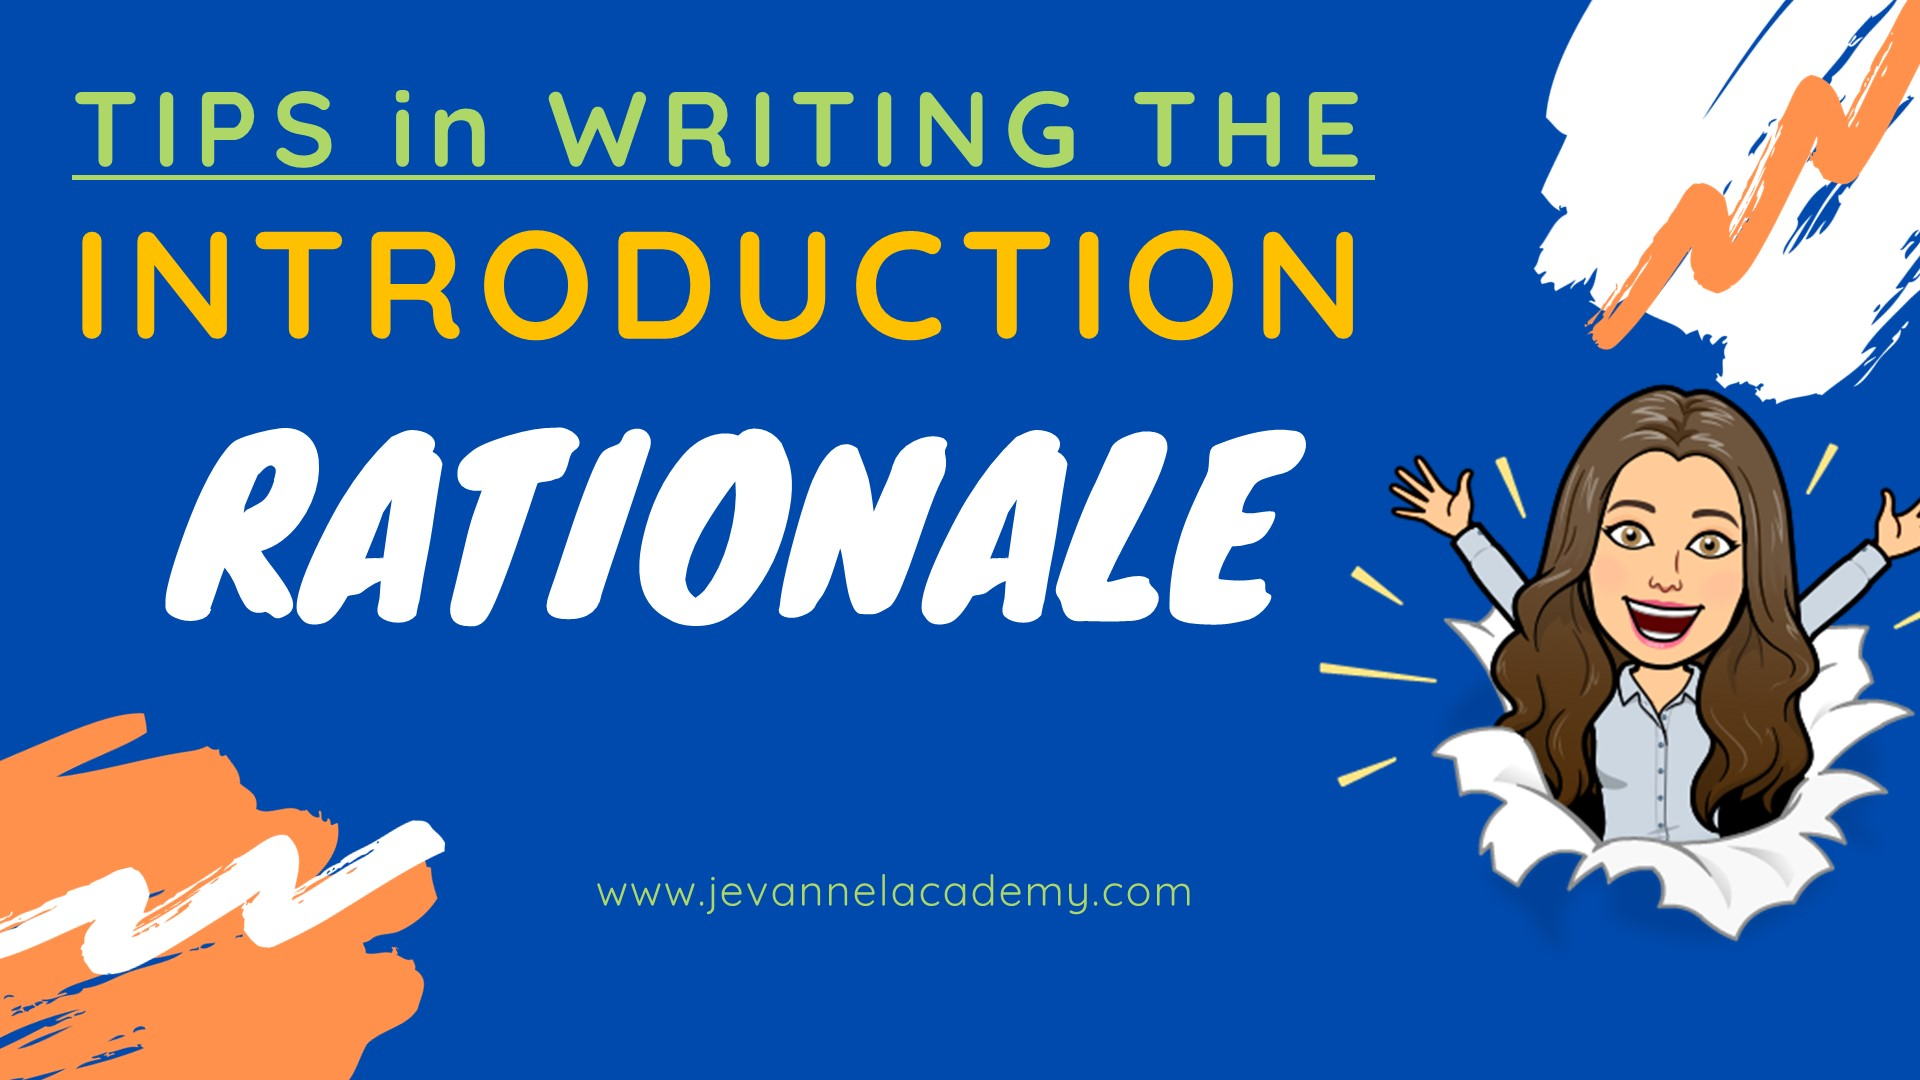 How to Write the Introduction - The Rationale